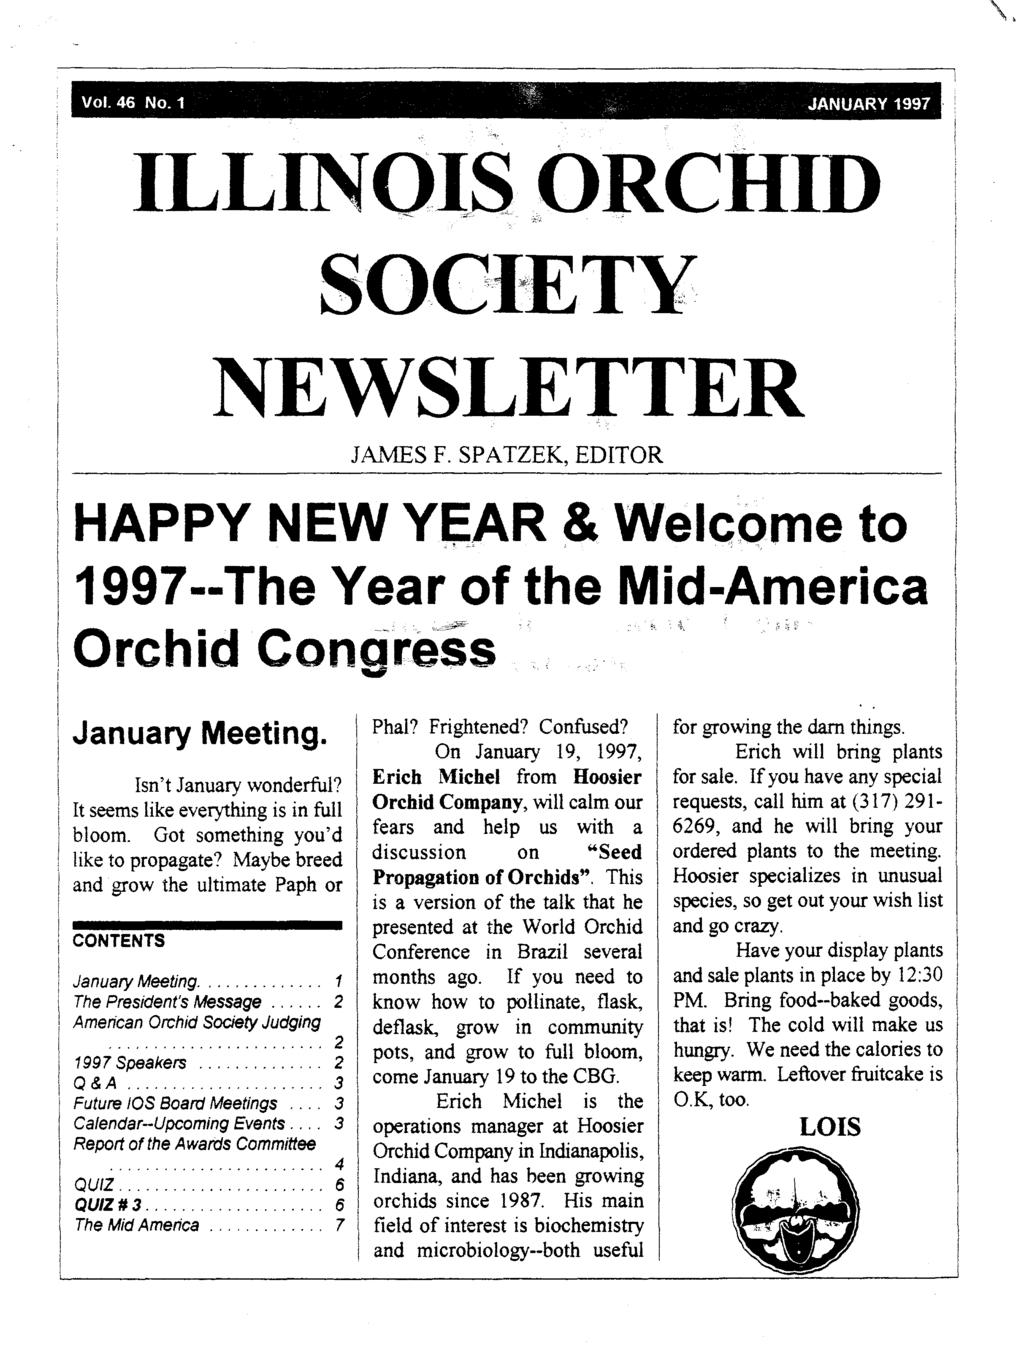 "\. Vol. 46 NO.1 JANUARY 1997. "" ILLINOlS~ORCHID SOCiETY NEWSLETTER JAMES F. SPATZEK, EDITOR HAPPY NEW Y~AR & Welcome to 1997--The Year of the Mid-America Orchid Congress January Meeting."